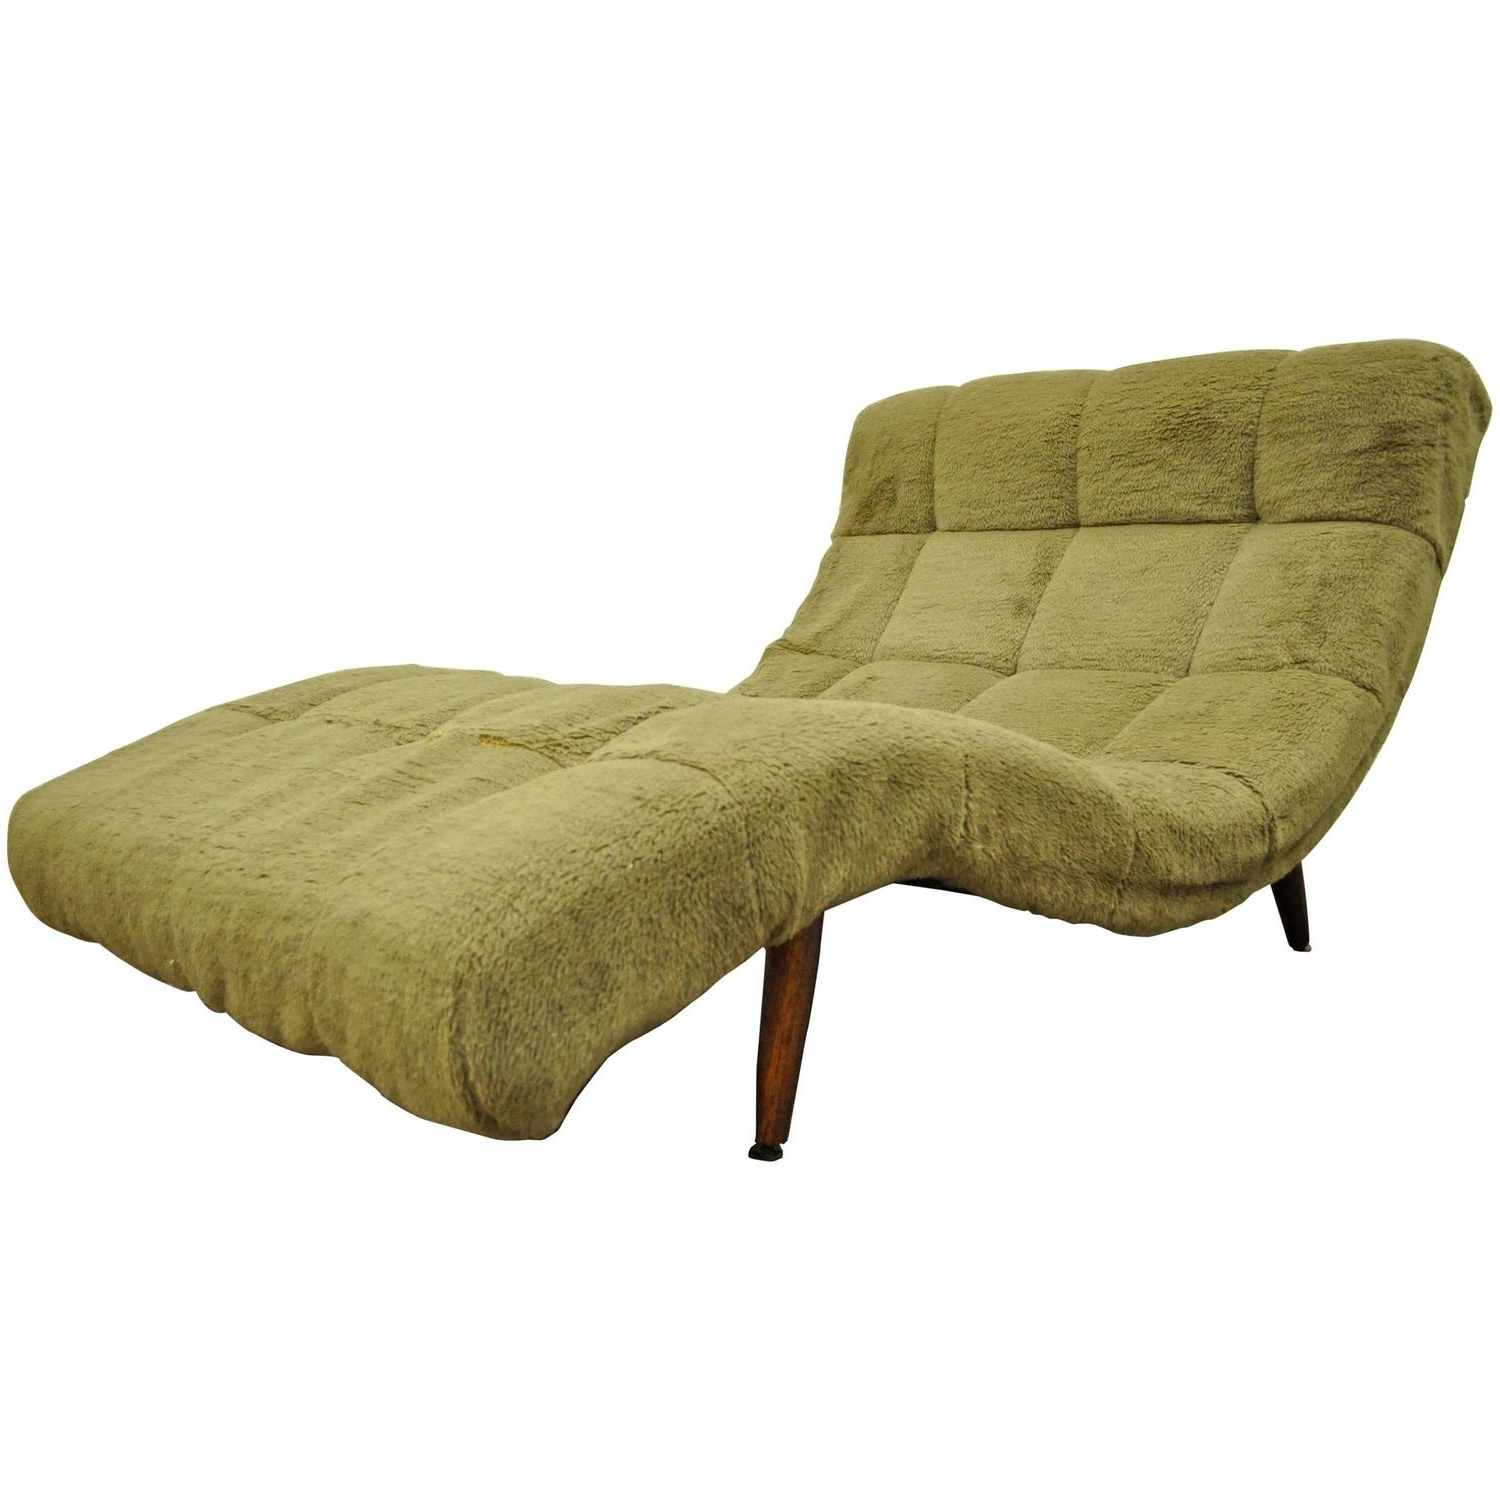 Midcentury Modern Double Wide Wave Chaise Lounge In The Style Of Pertaining To Best And Newest Green Chaise Lounges (View 13 of 15)